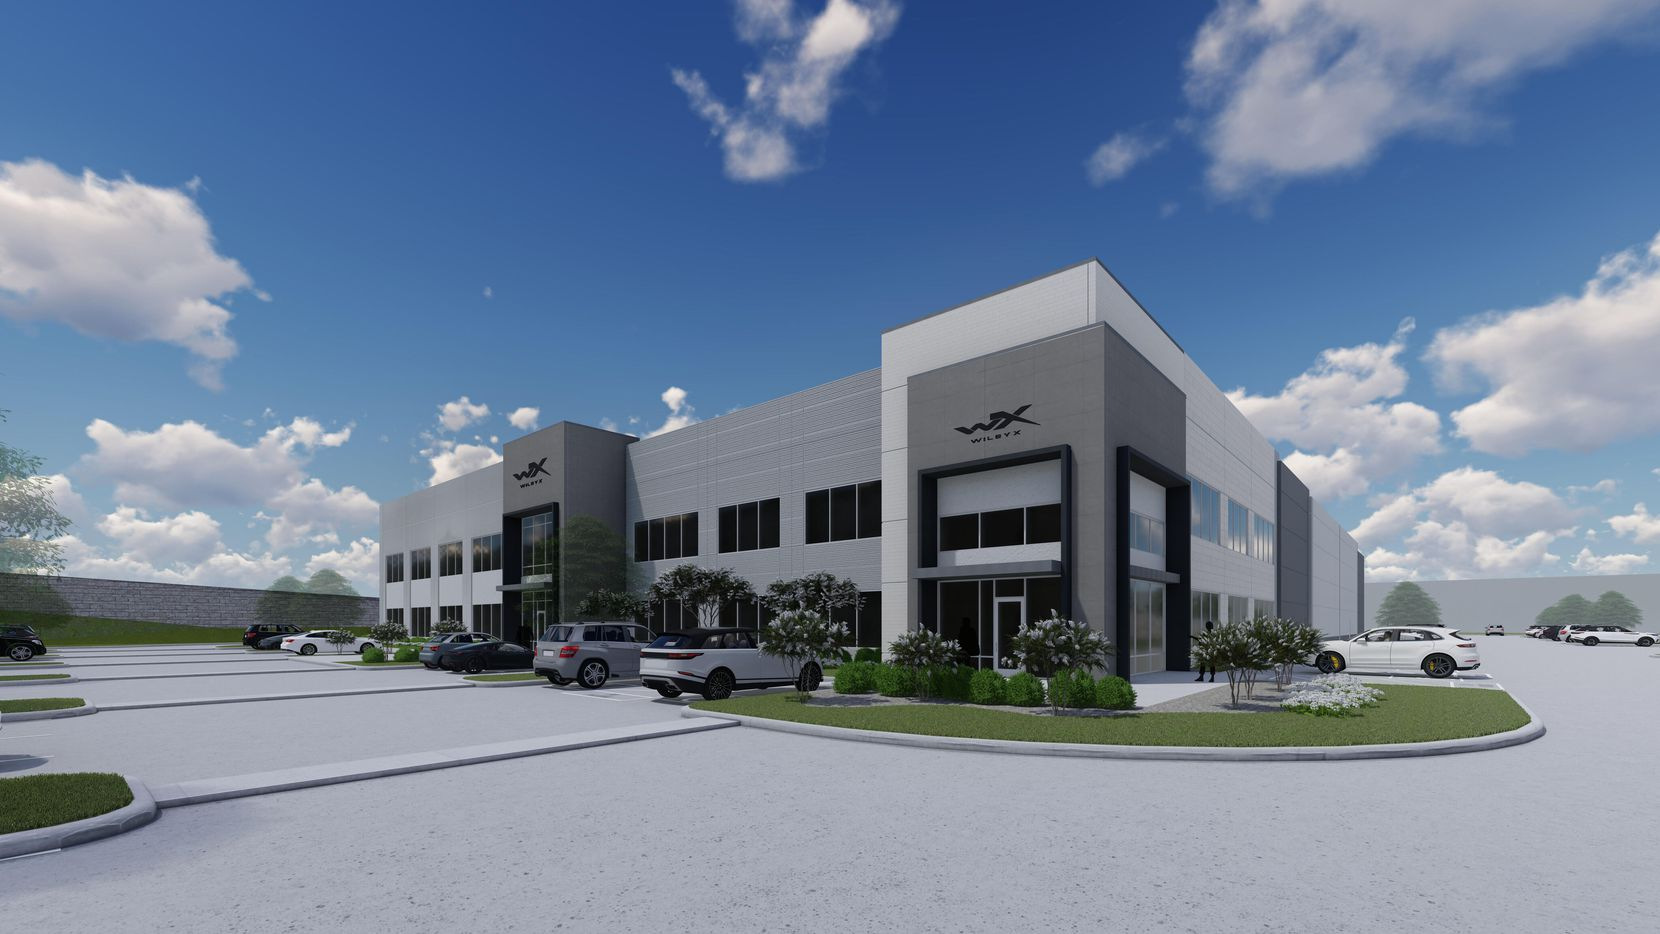 A rendering of protective eyewear company Wiley X's new headquarters being built in Frisco. The building is expected to open in the second quarter of 2022.